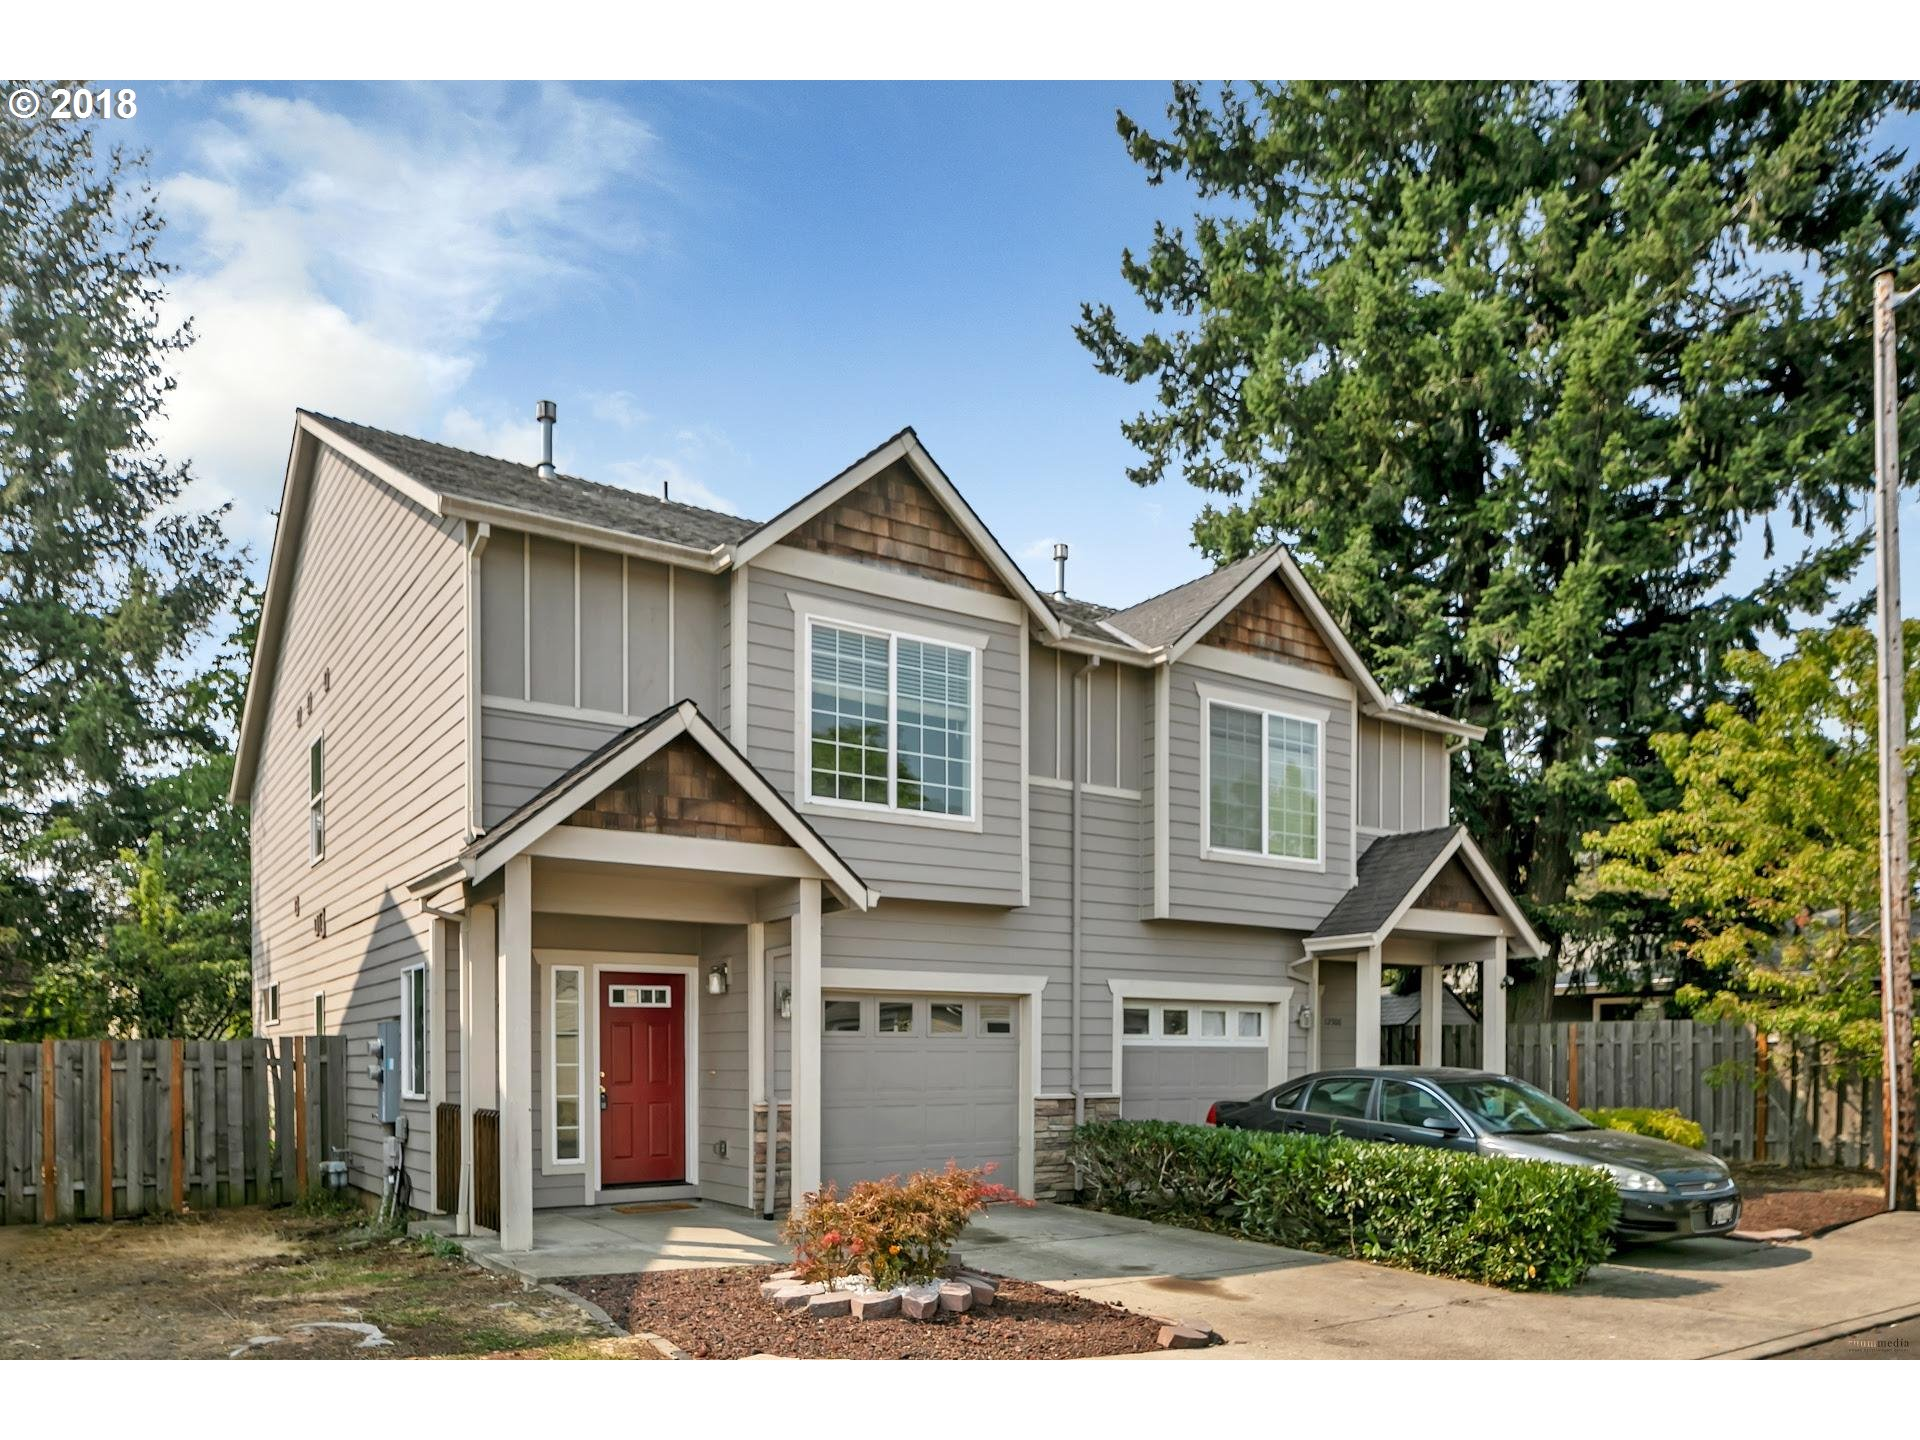 Photo for 12506 SE WOODWARD ST, Portland, OR 97236 (MLS # 18415529)